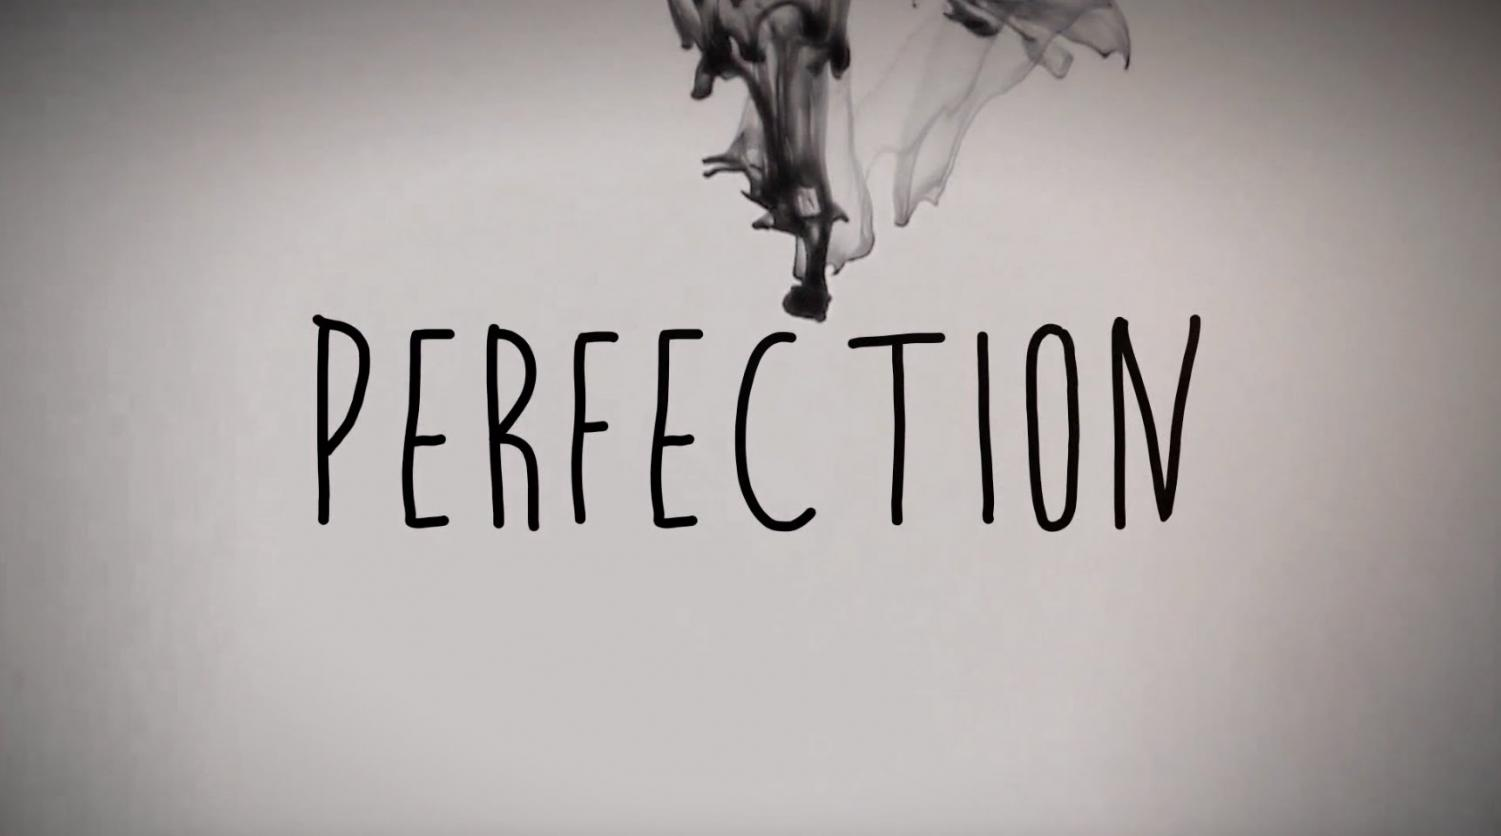 The fumes of effort form that of perfection in all of life's overwhelming challenges. Can it be contained?